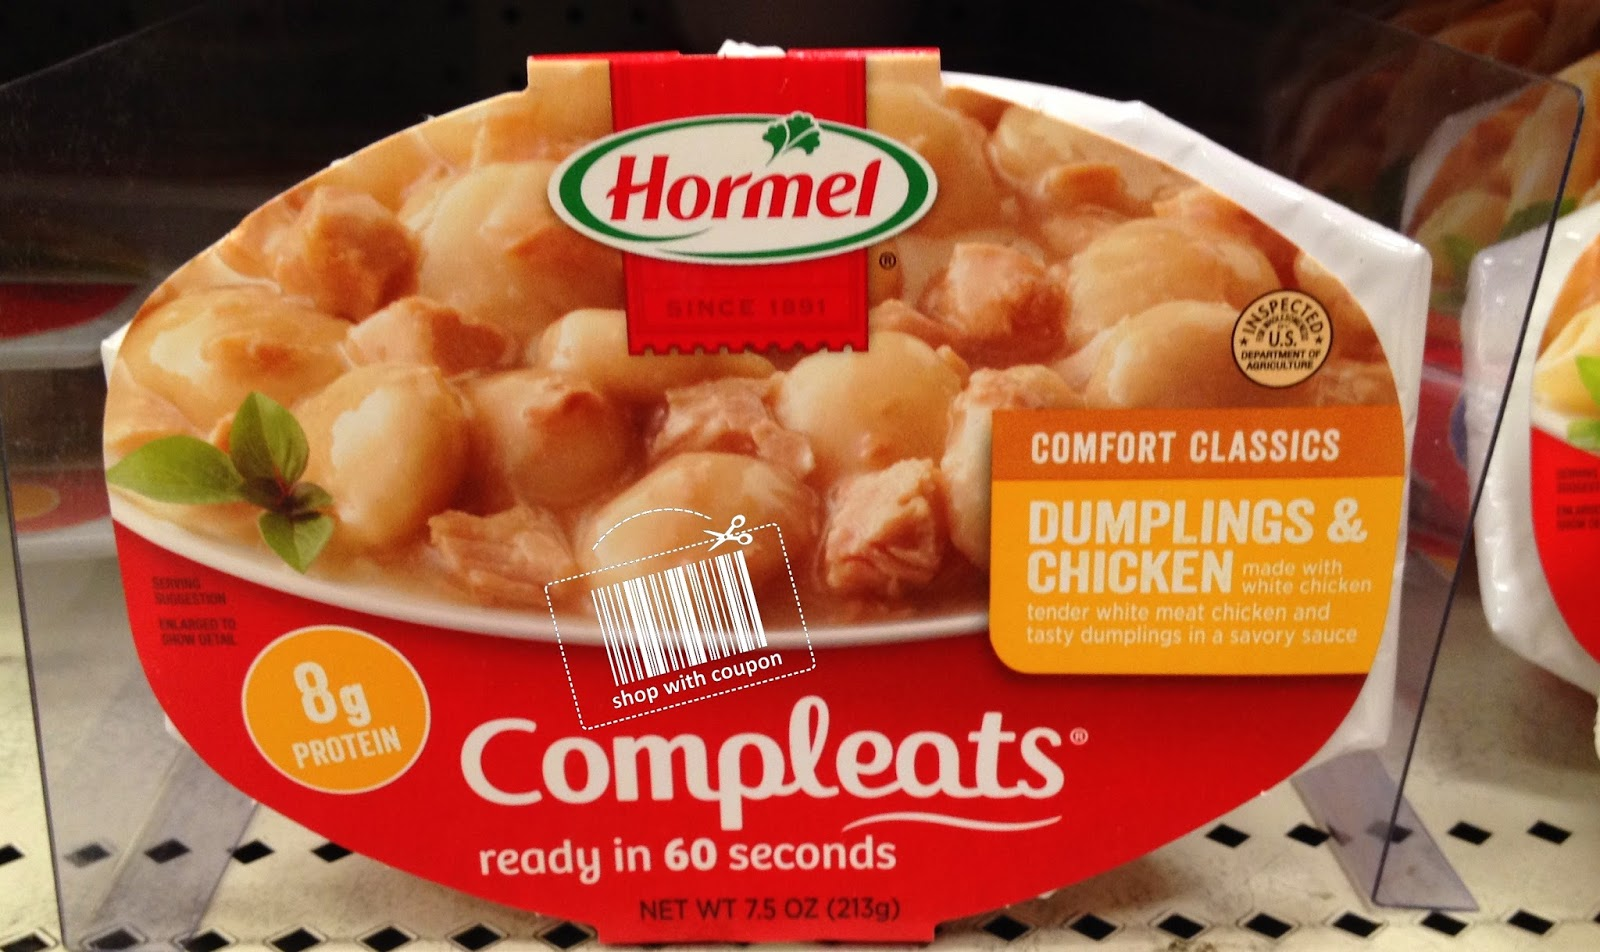 With Coupon Target Hormel Compleats Microwave Meal